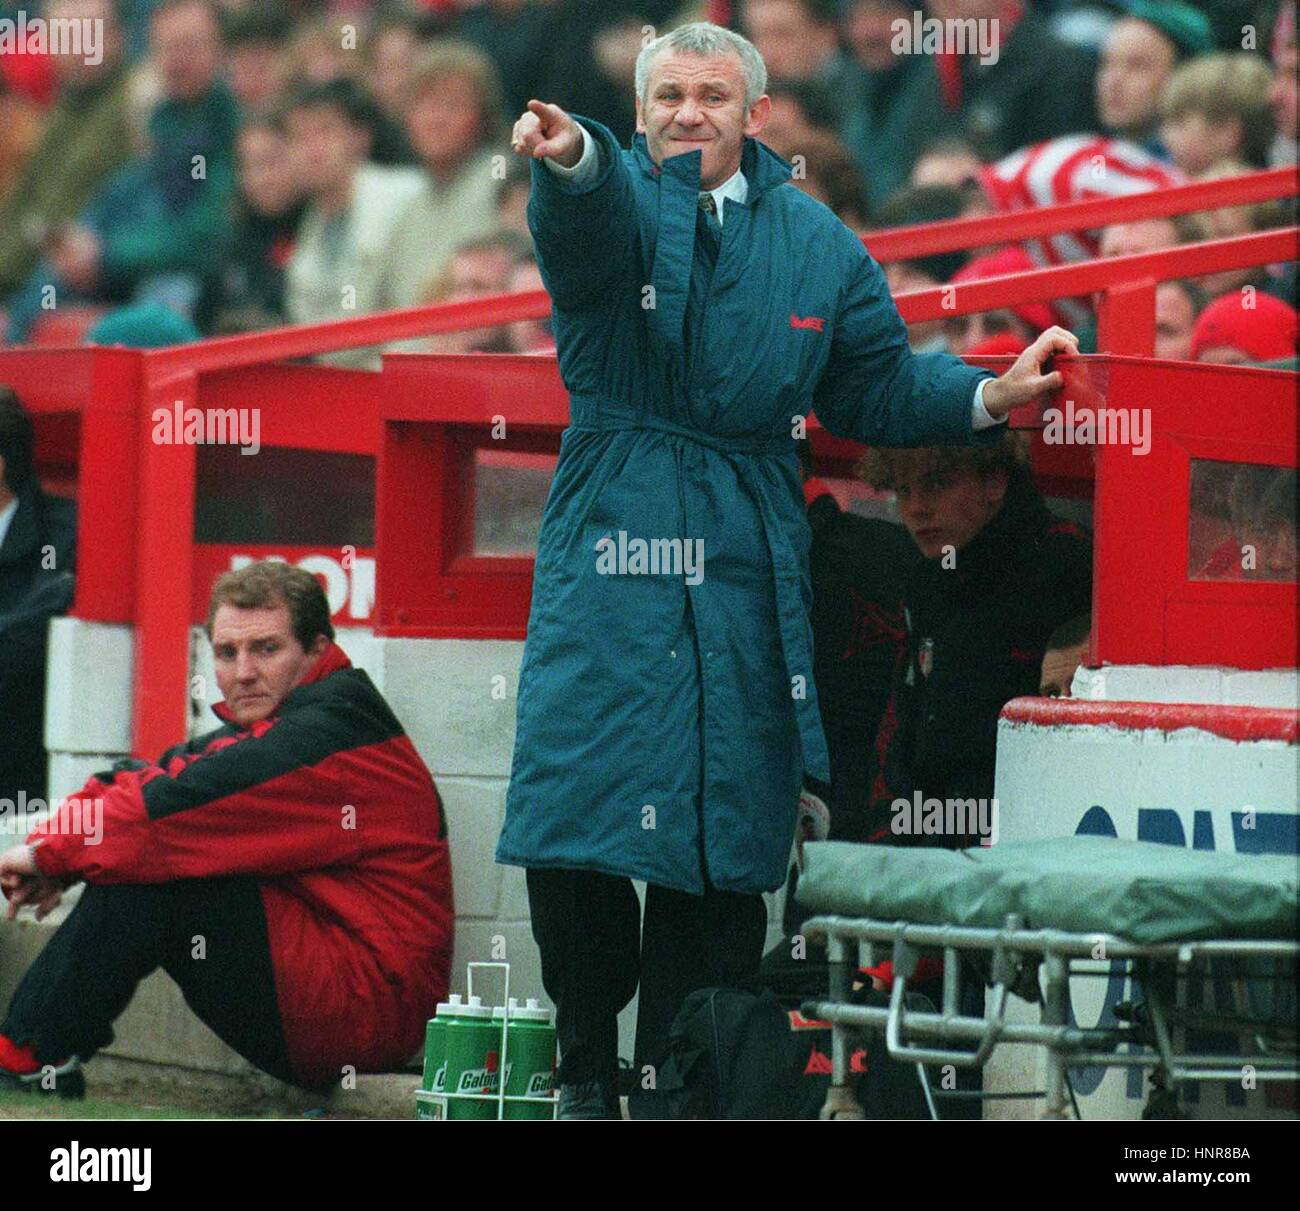 REID ISSUES INSTRUCTIONS BARNSLEY V SUNDERLAND 06 April 1996 - Stock Image